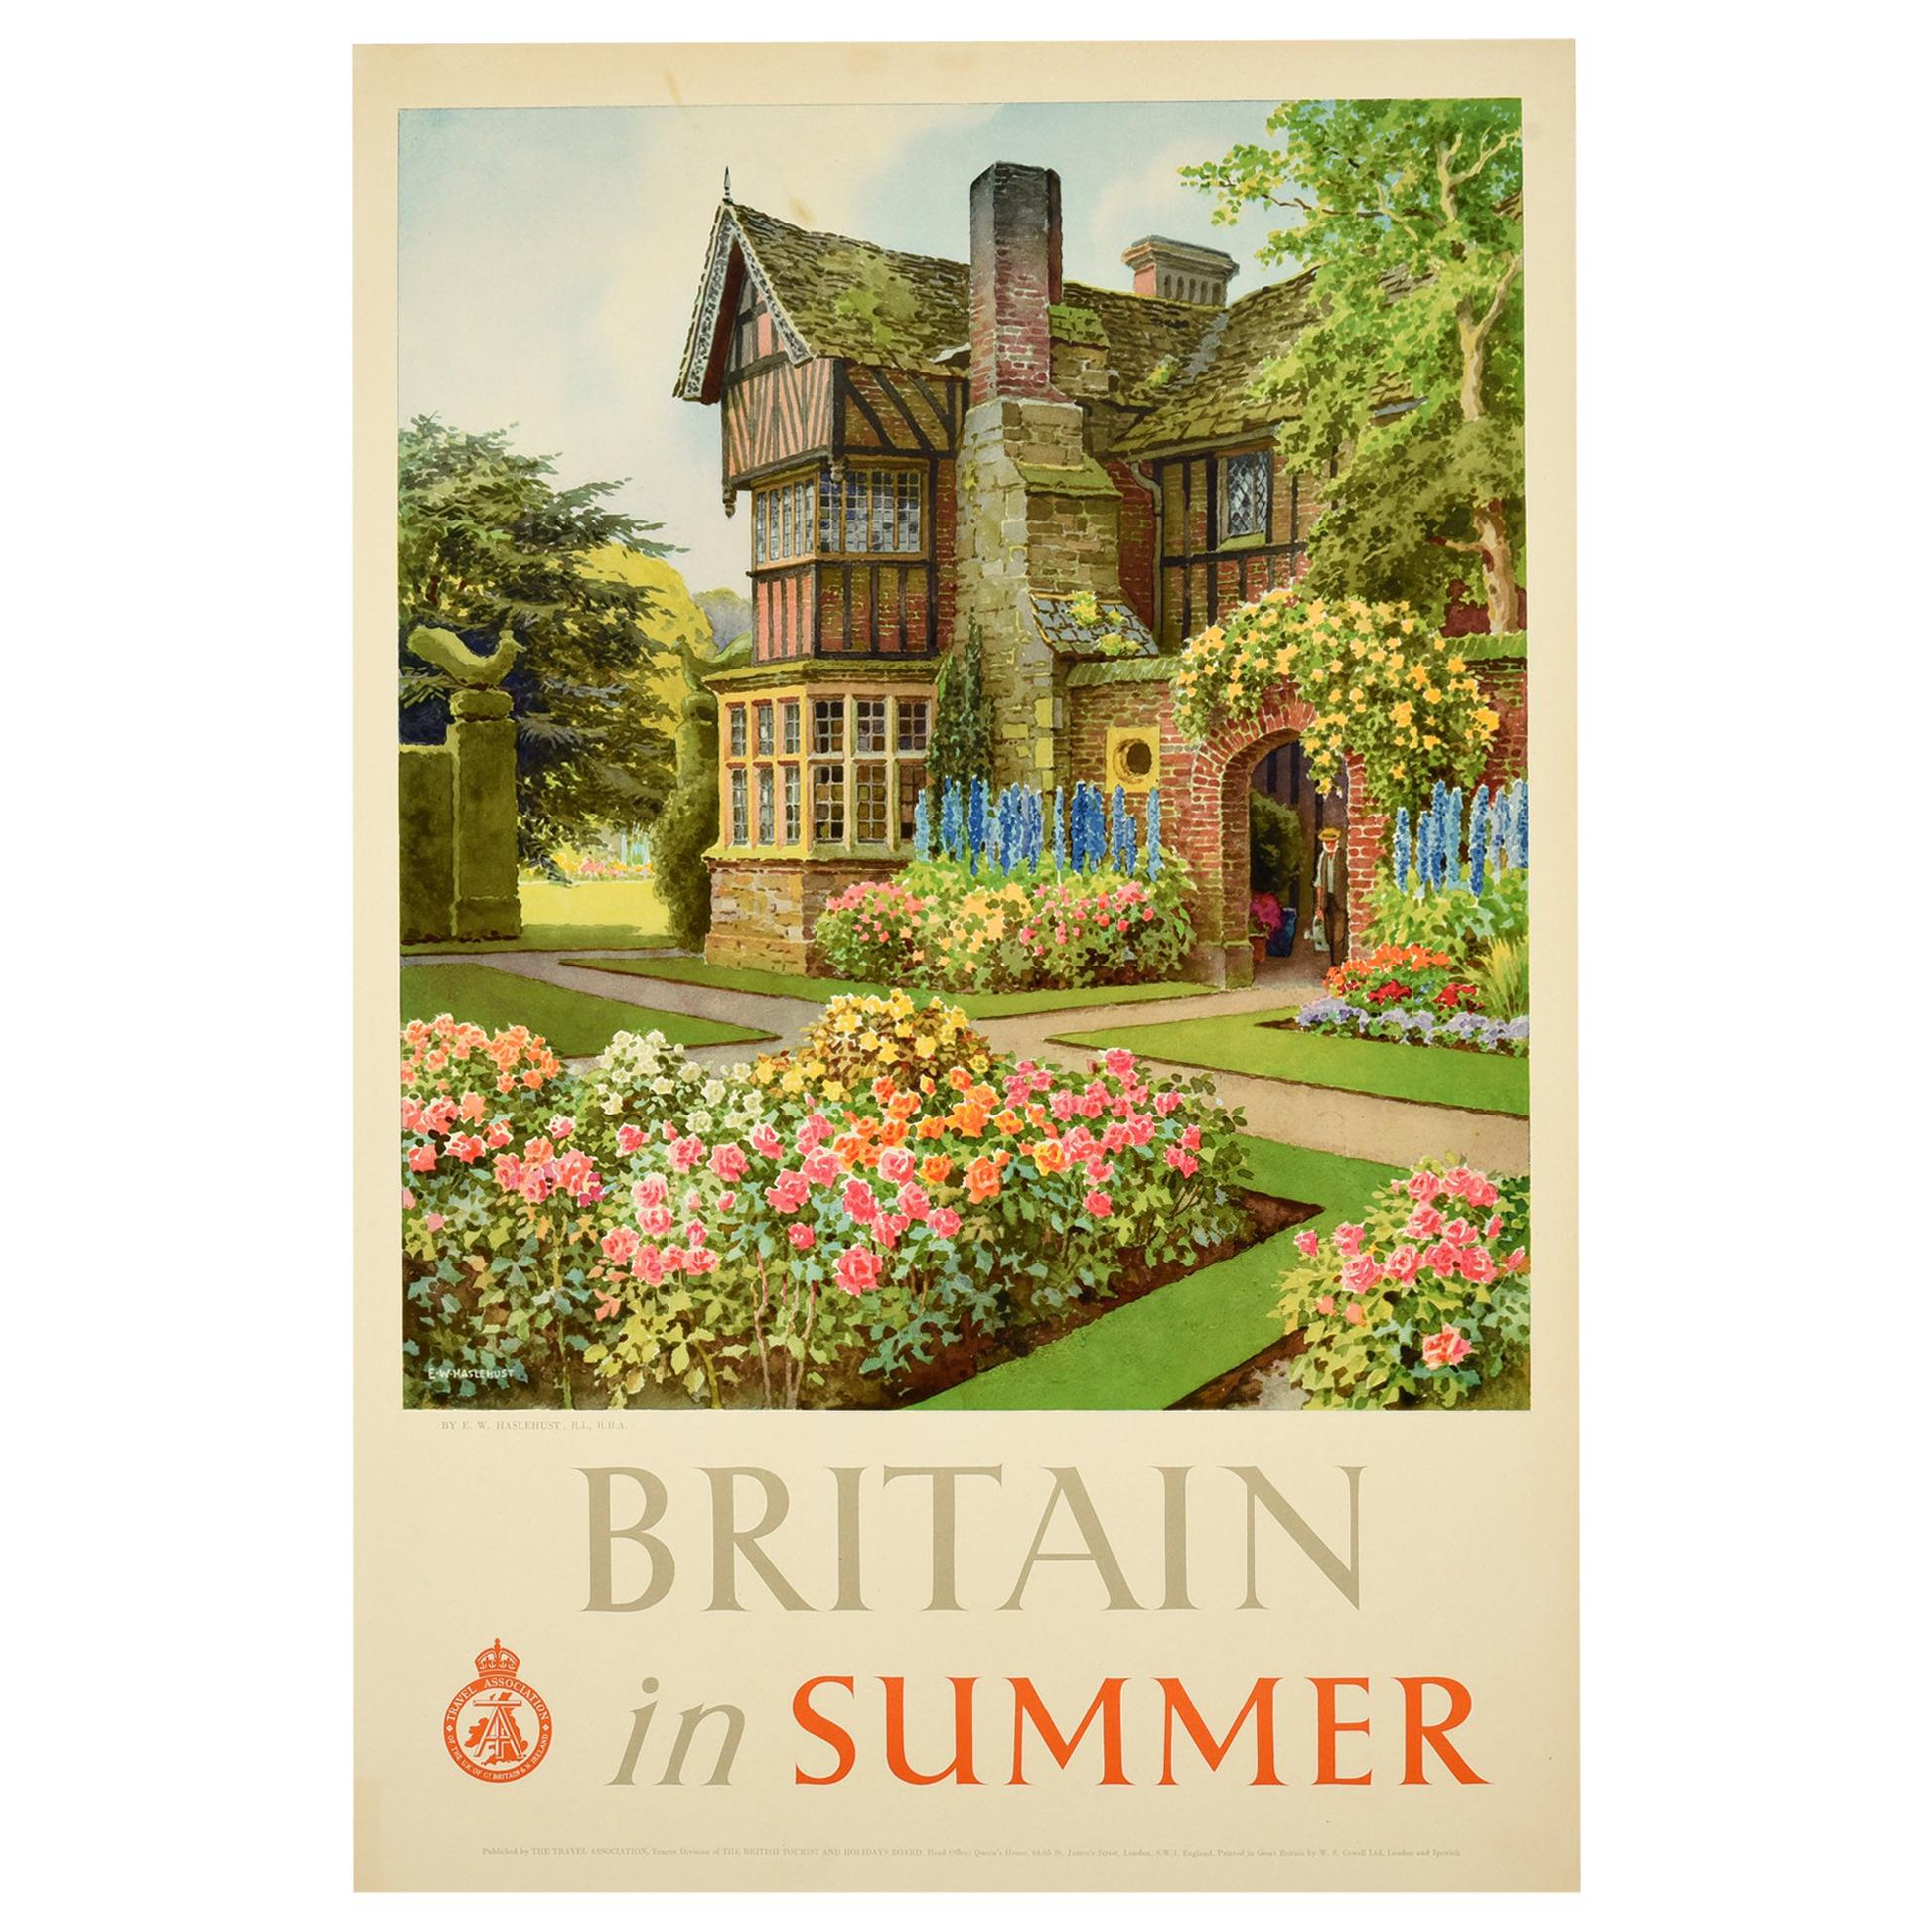 Original Vintage Poster Britain In Summer Travel Country House Landscape Gardens